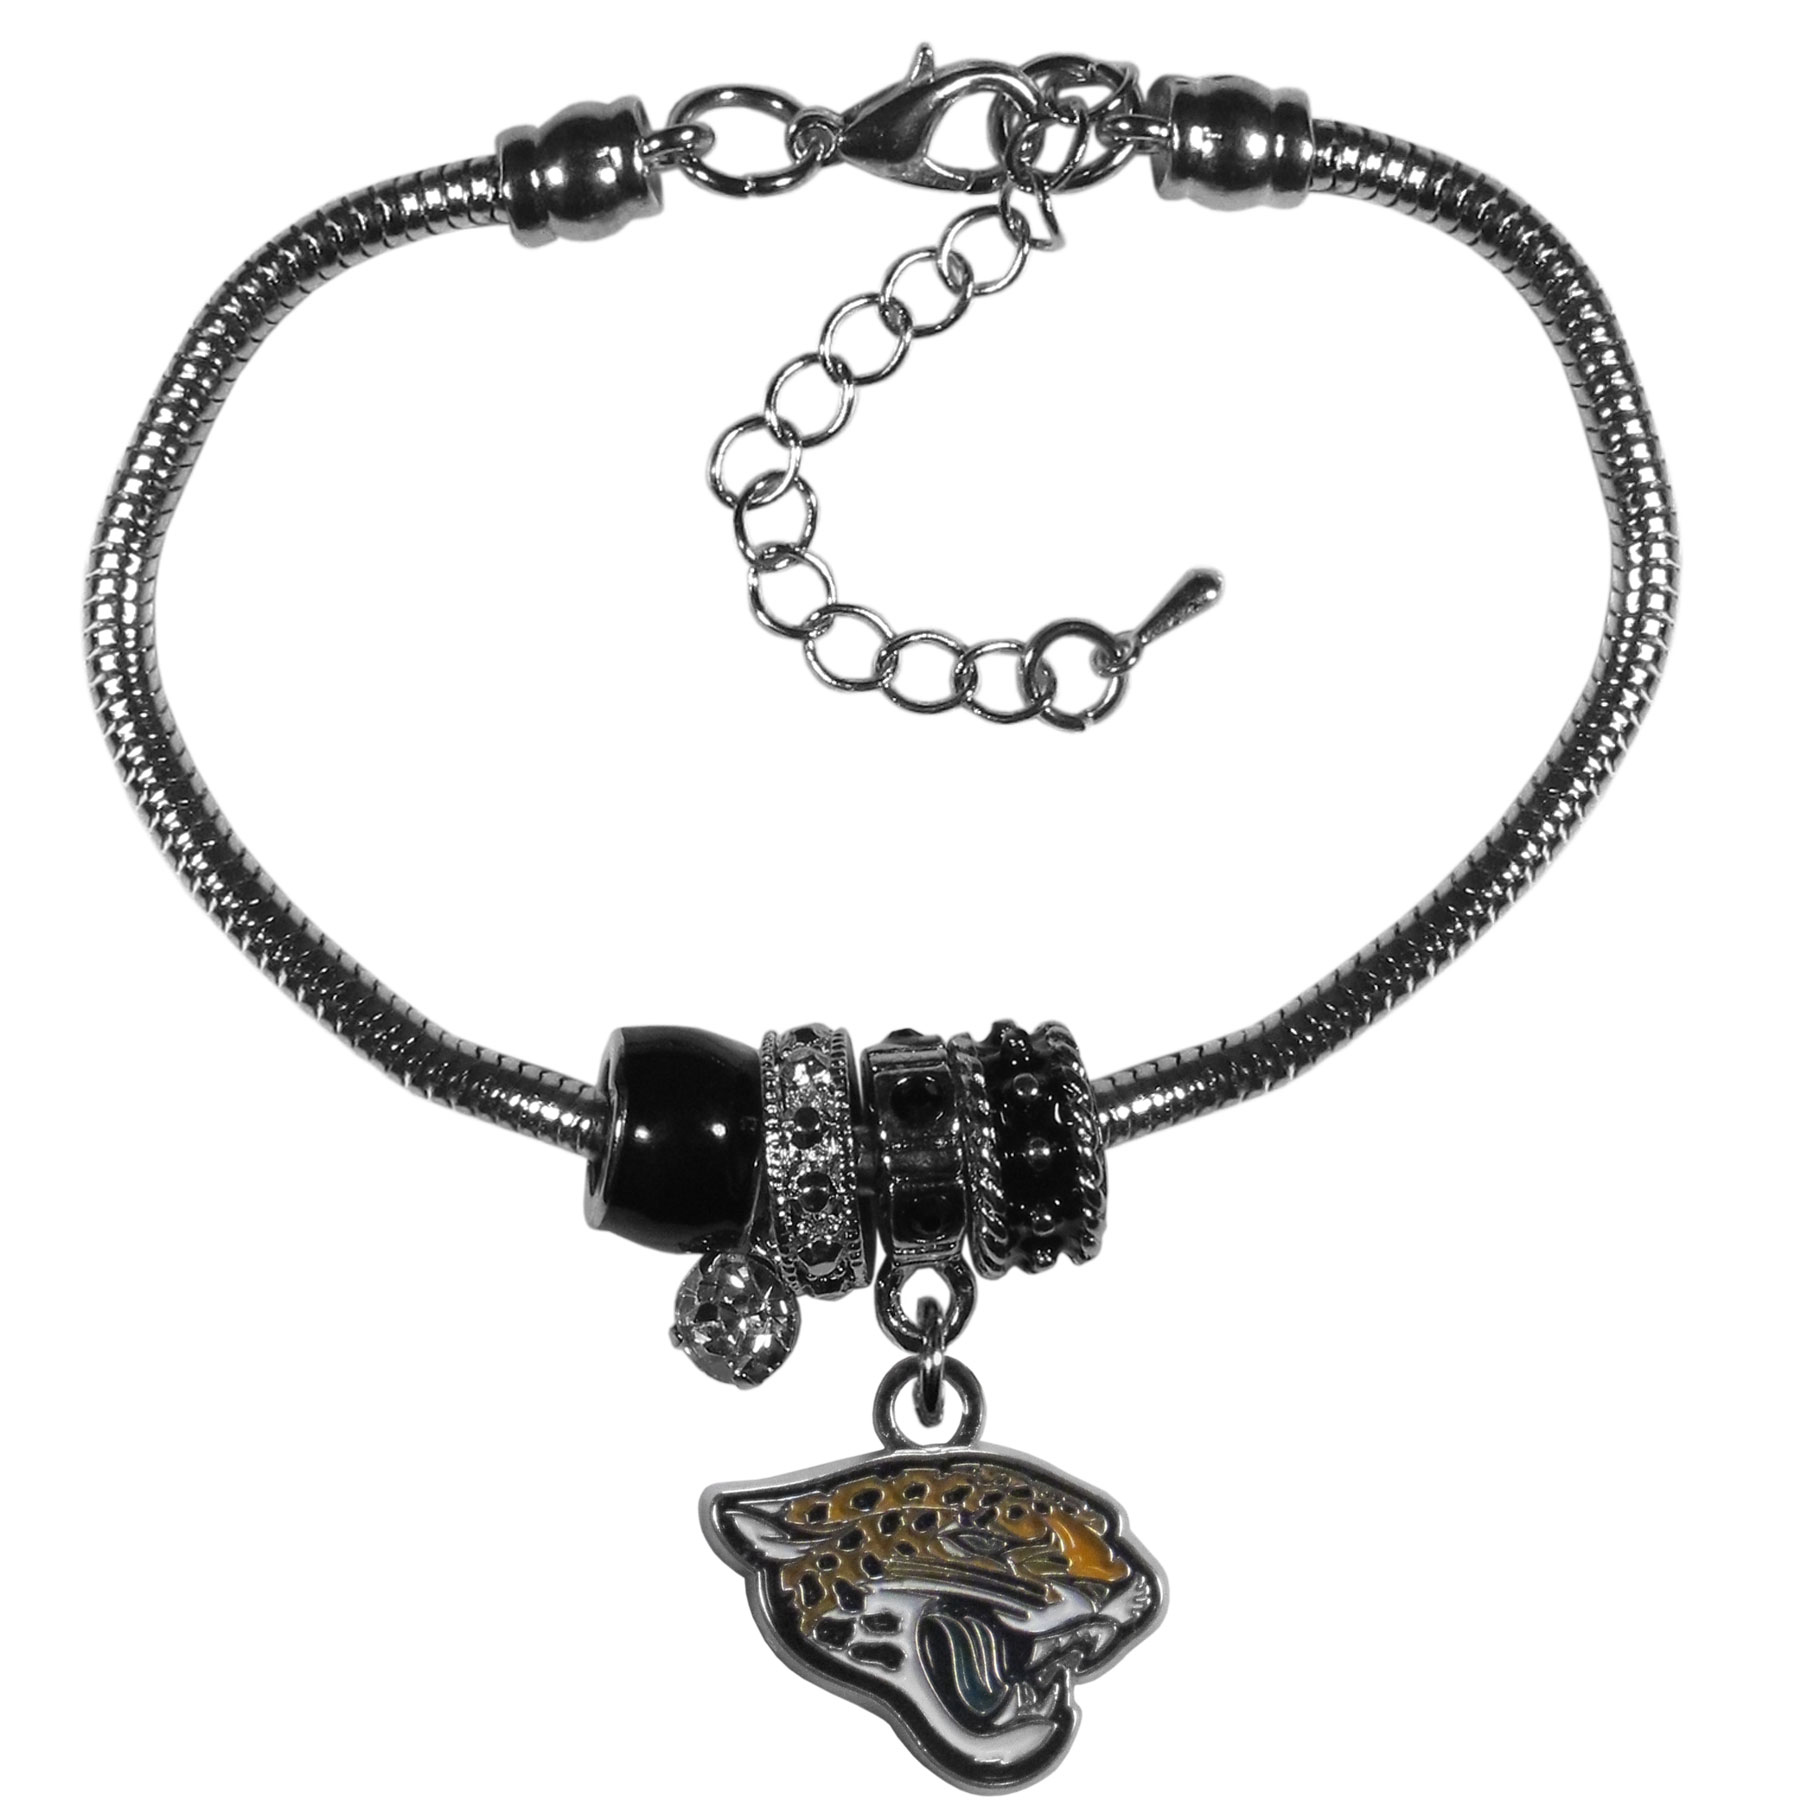 Jacksonville Jaguars Euro Bead Bracelet - This must-have bracelet is fashioned with the trendy euro style beads and an eye catching team charm to create a designer inspired Jacksonville Jaguars bead bracelet. This is a true statement piece with 4 euro beads, a rhinestone accent and stylish team charm beaded onto a 7.5 inch snake chain with a 2 inch extender for an adjustable fit. This contemporary look is perfect for game day but chic enough for everyday.